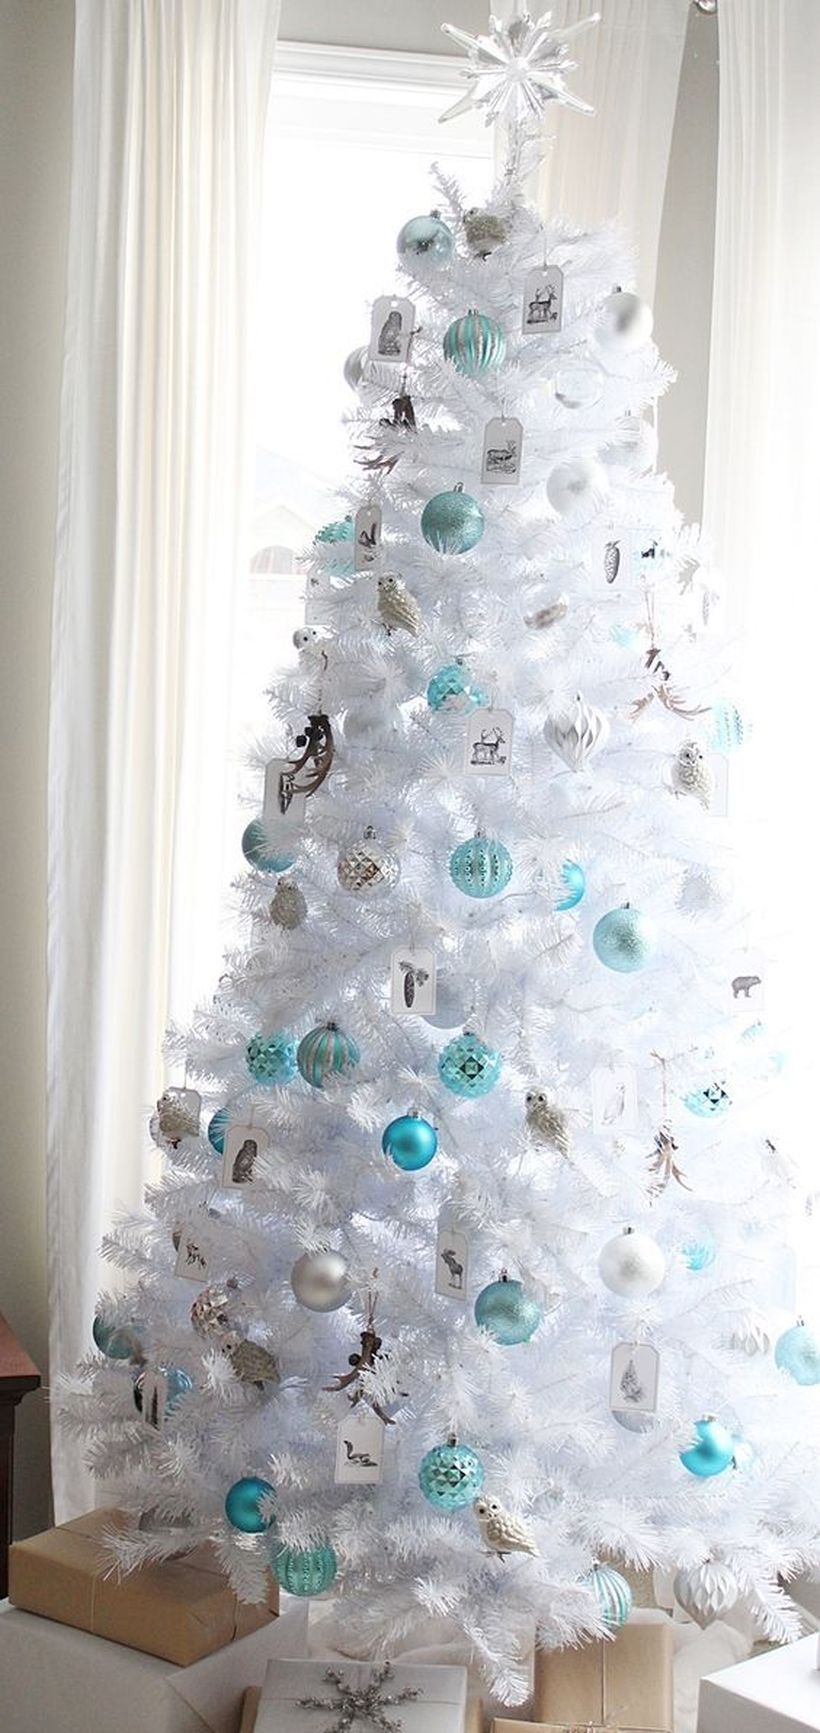 White-christmas-tree-decorated-in-blue-and-silver-bell-with-frost-and-star-ornament-at-the-top